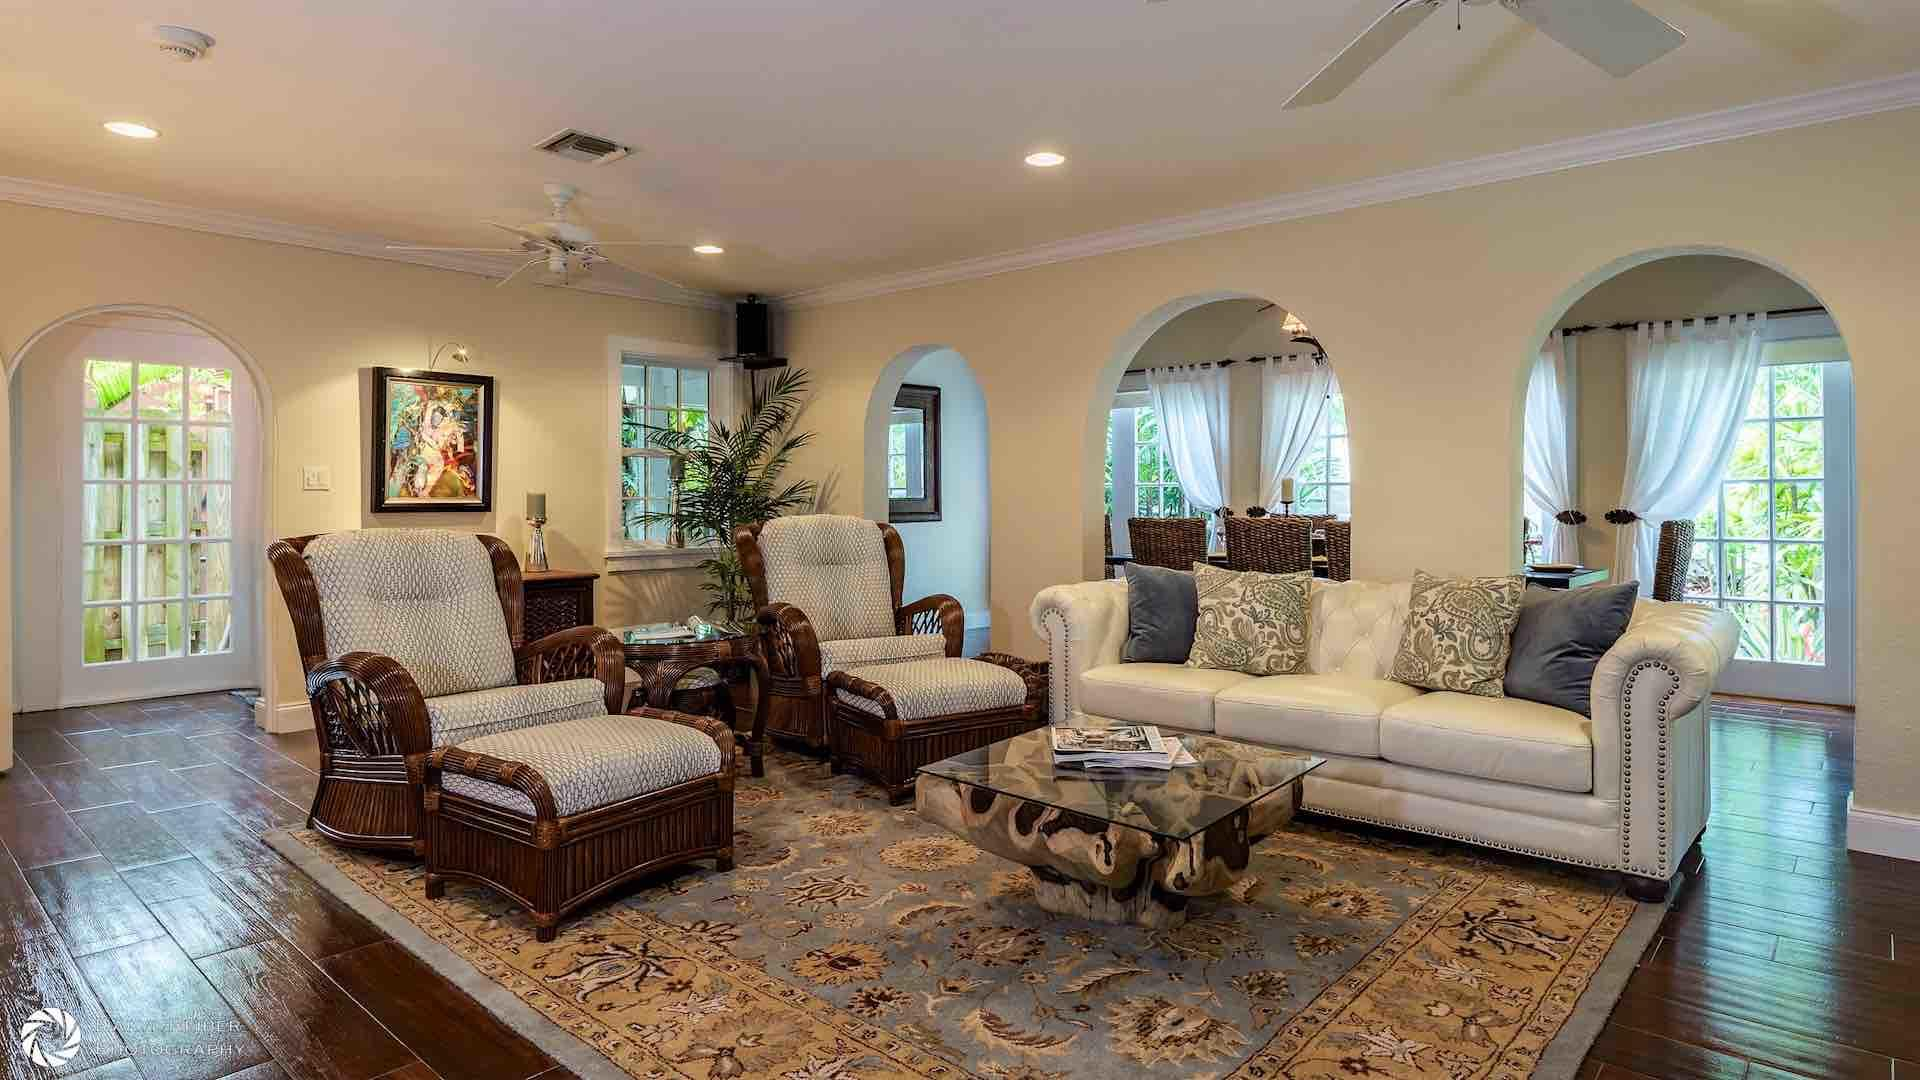 The spacious living room has plenty of comfortable seating for everyone...